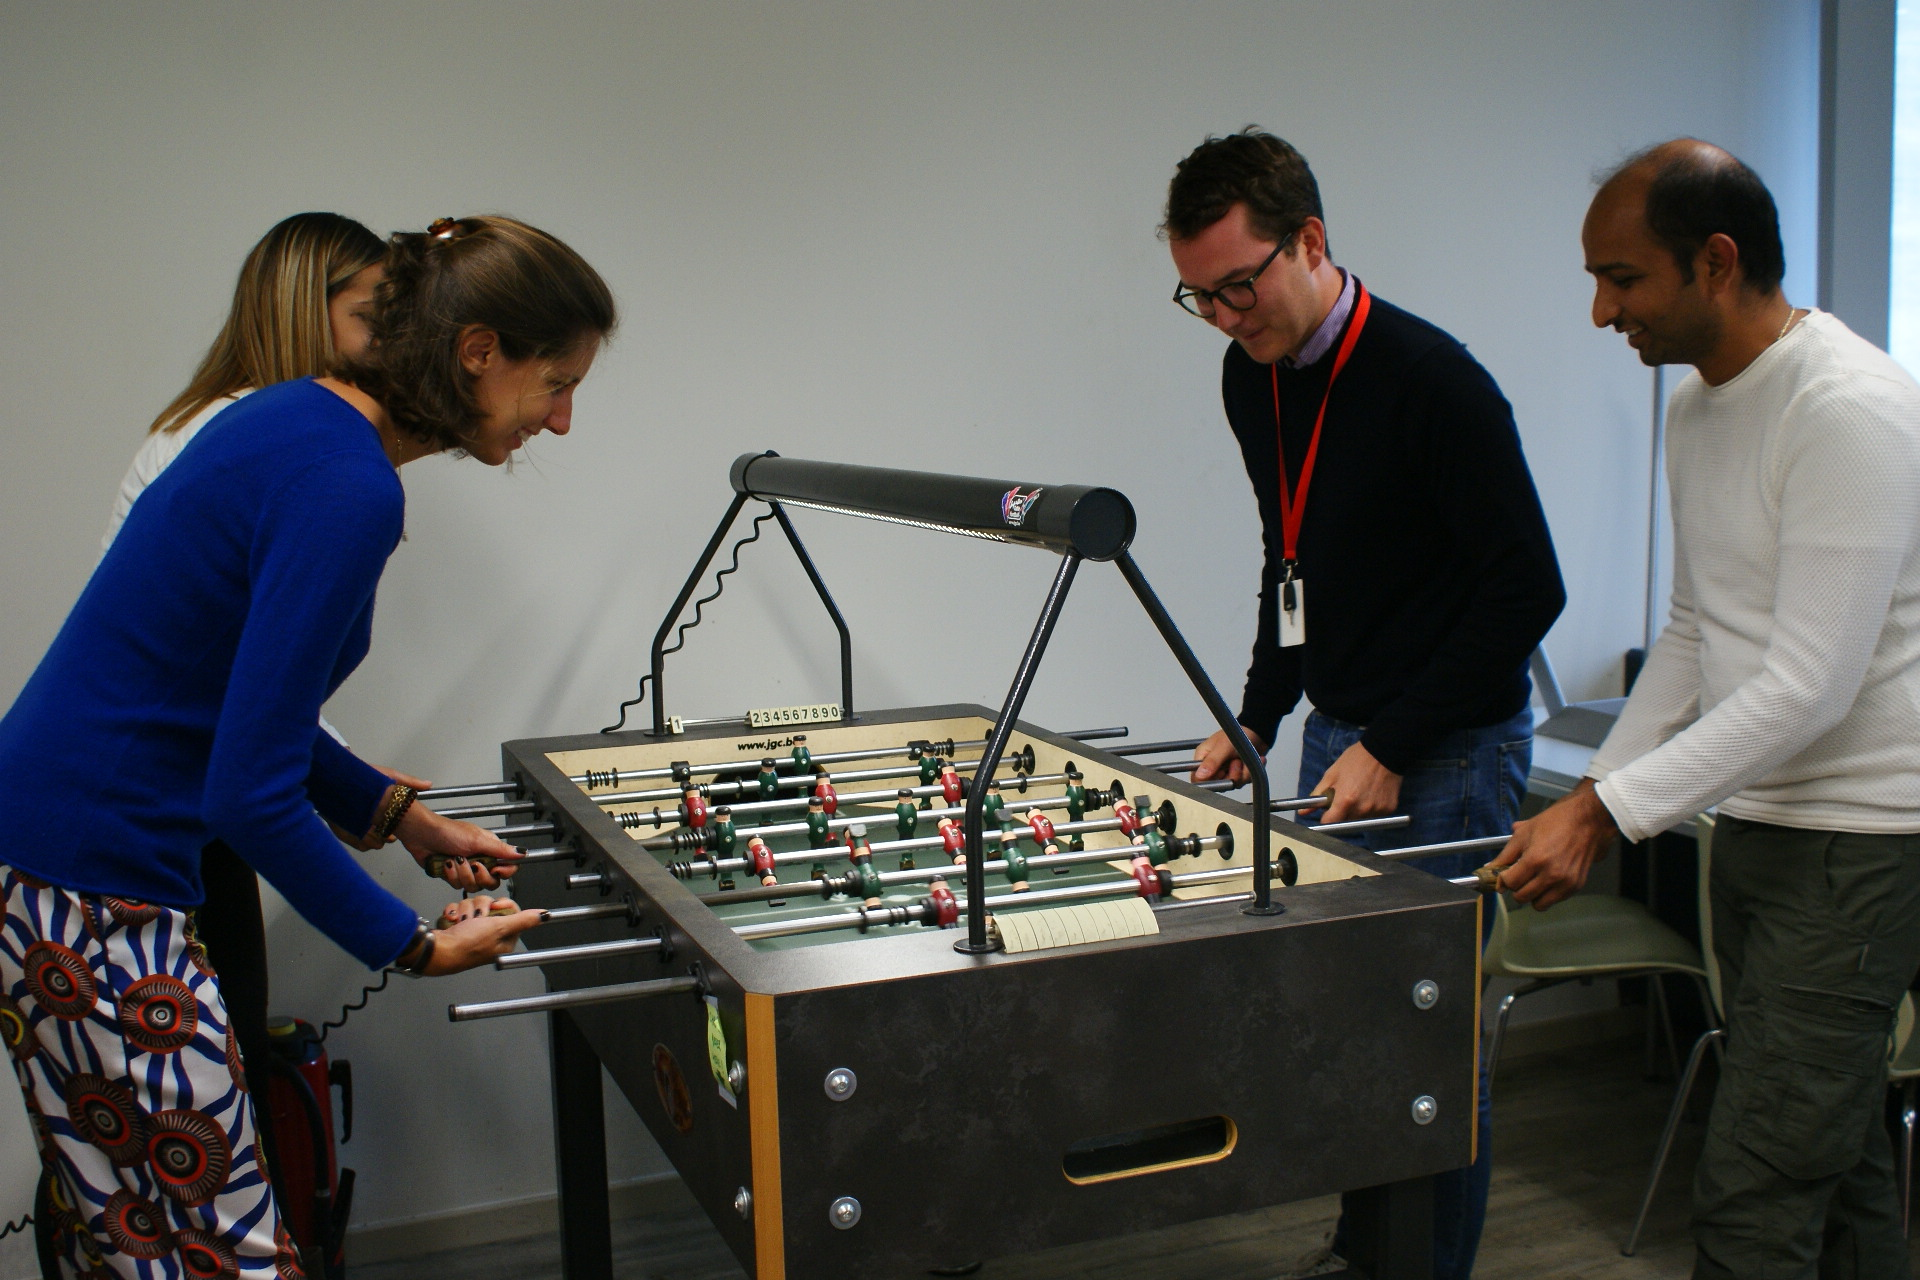 Four Belgian team members play table soccer